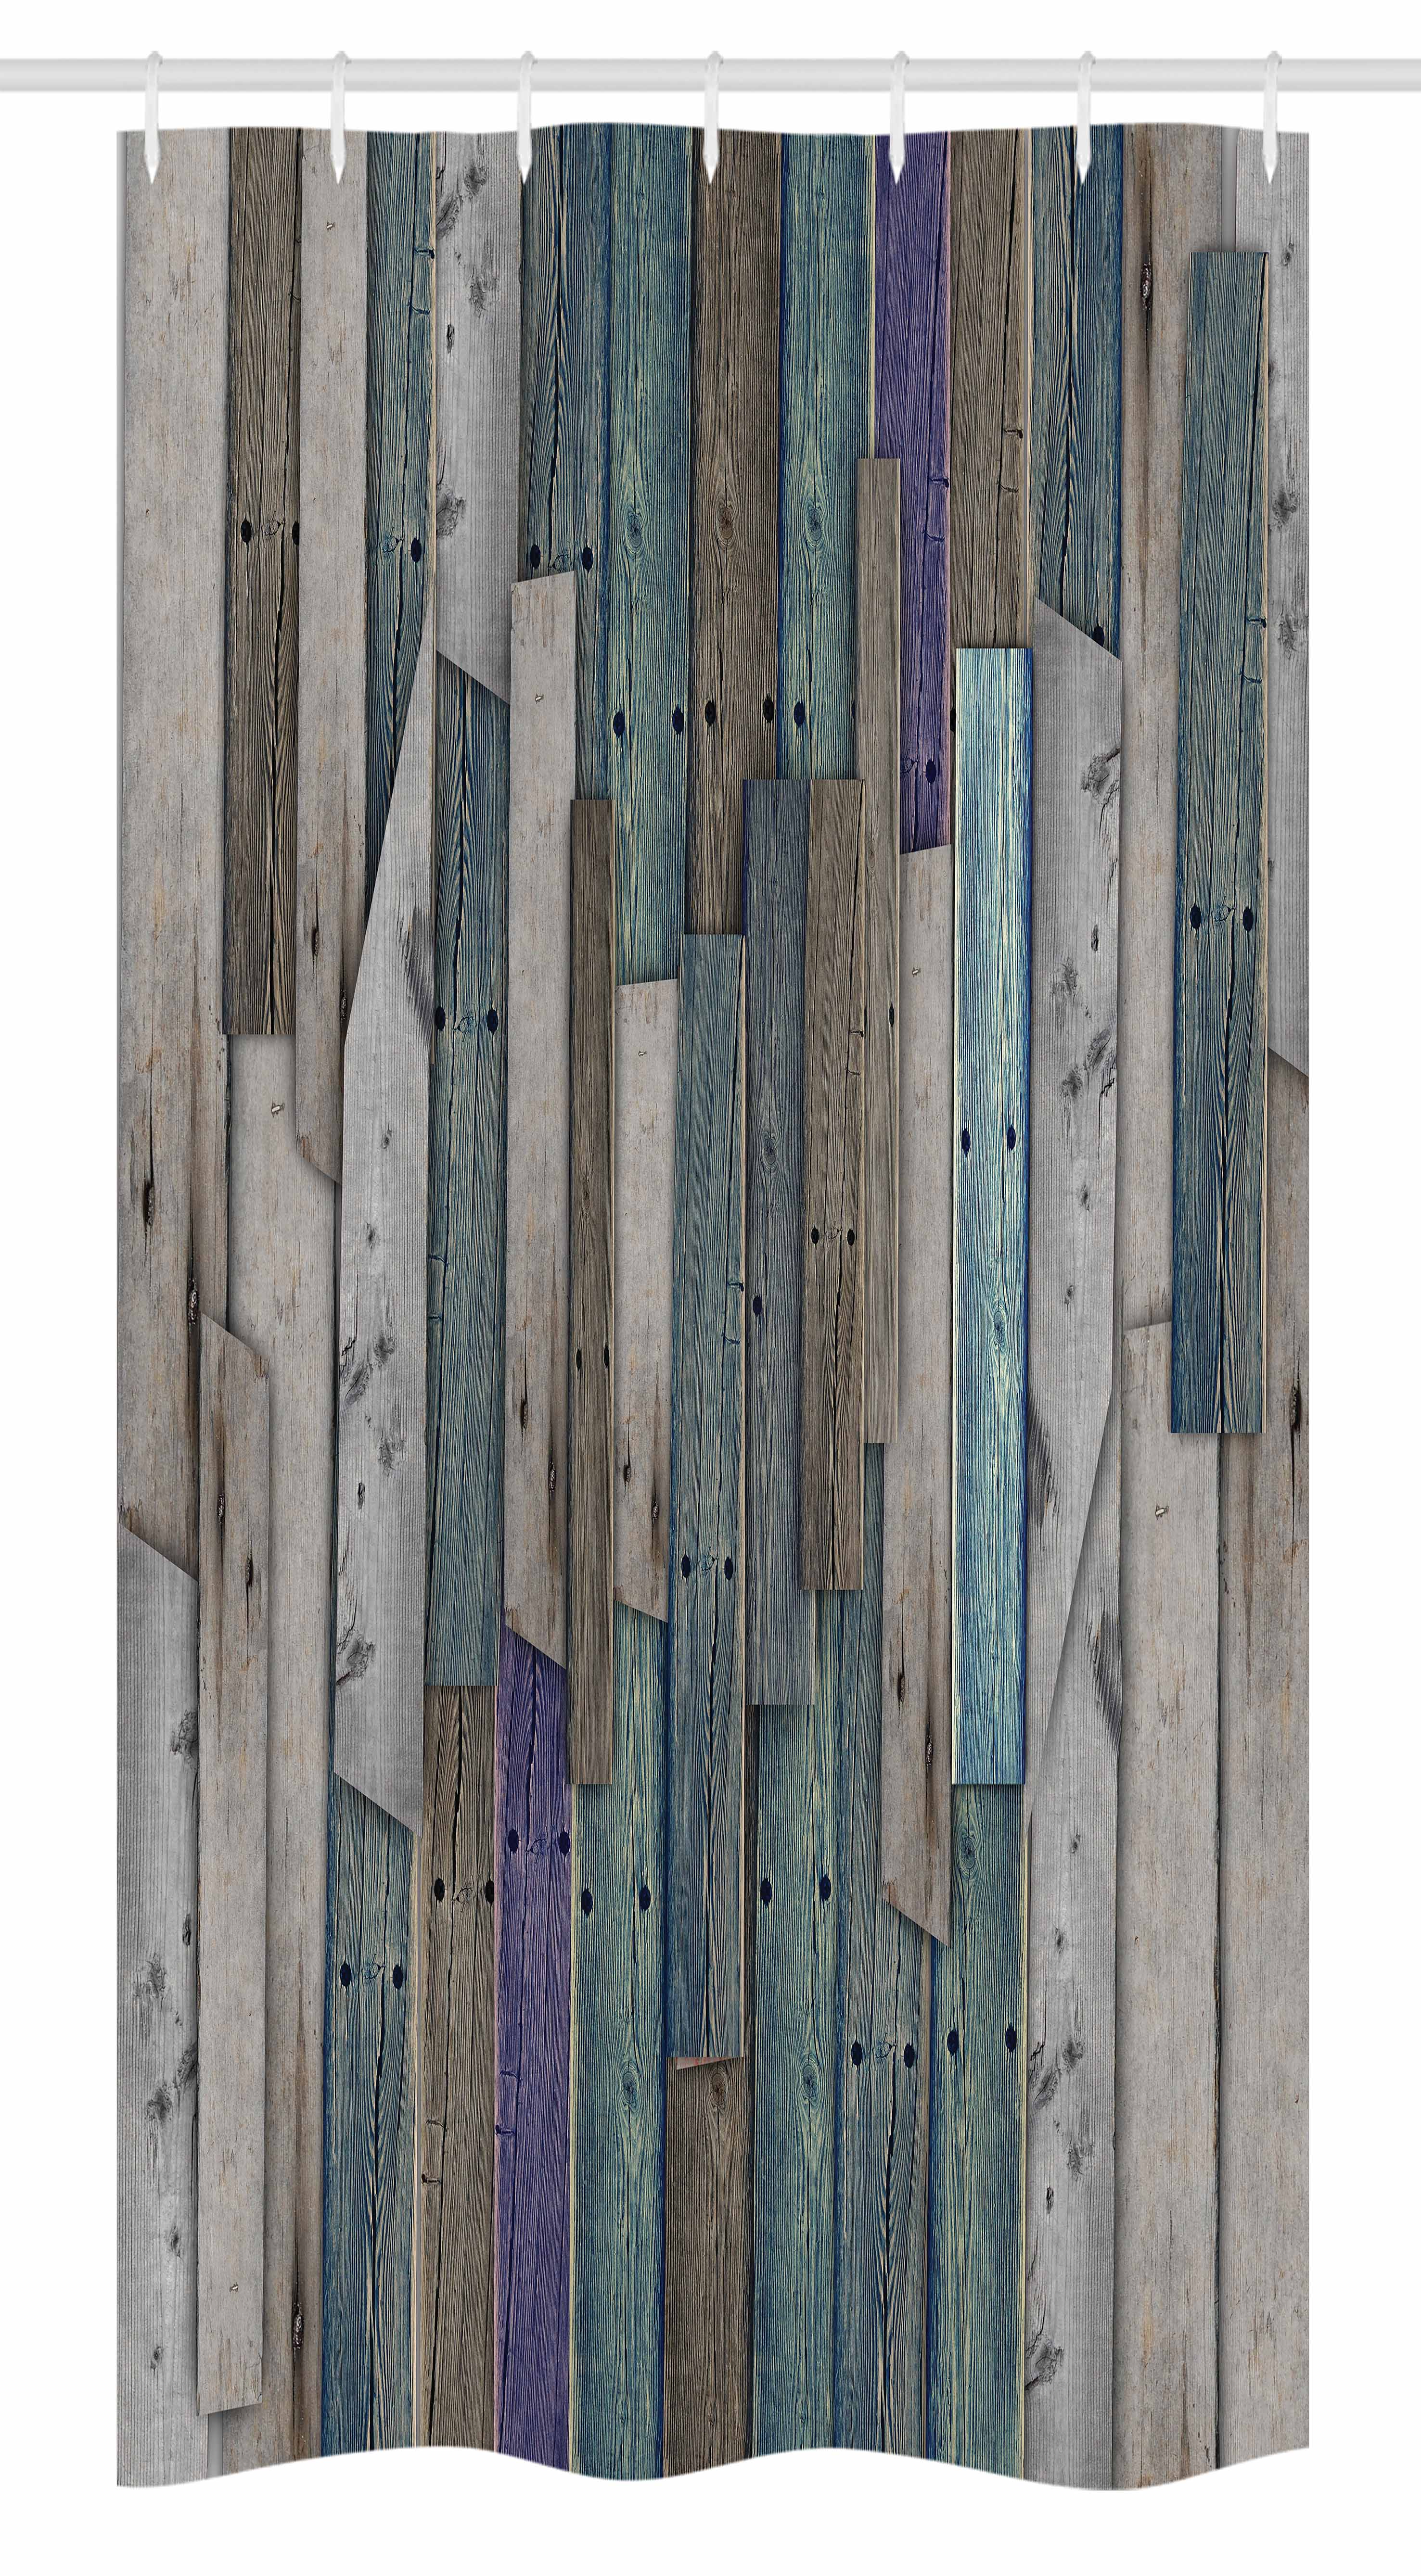 Wooden Stall Shower Curtain Blue Grey Grunge Rustic Planks Barn House Wood And Nails Lodge Hardwood Graphic Print Fabric Bathroom Set With Hooks